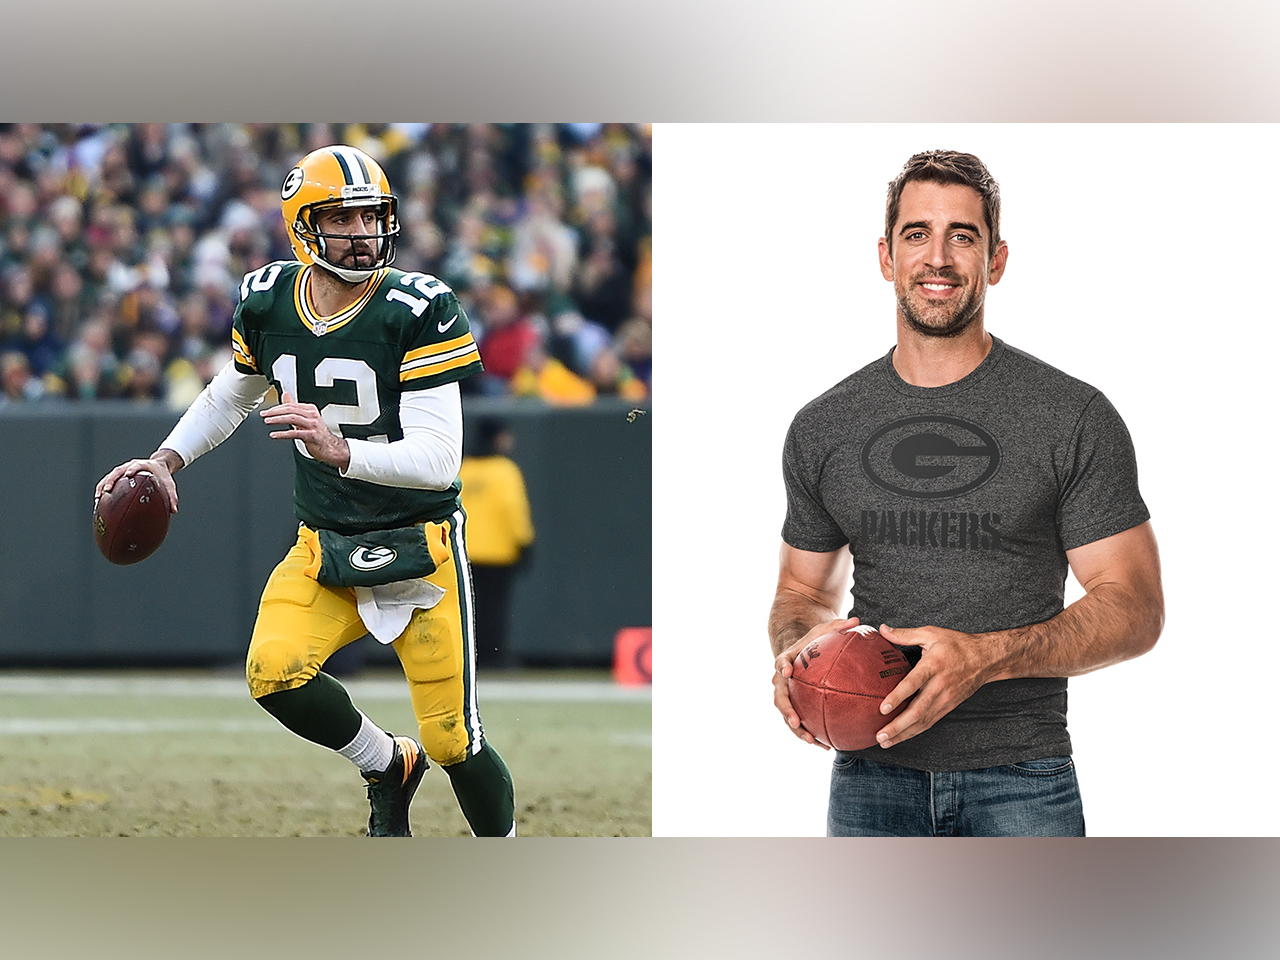 Aaron Rodgers Talks Offseason Training, Yoga, and Eating Habits: I Want to Play Another 10 Years'